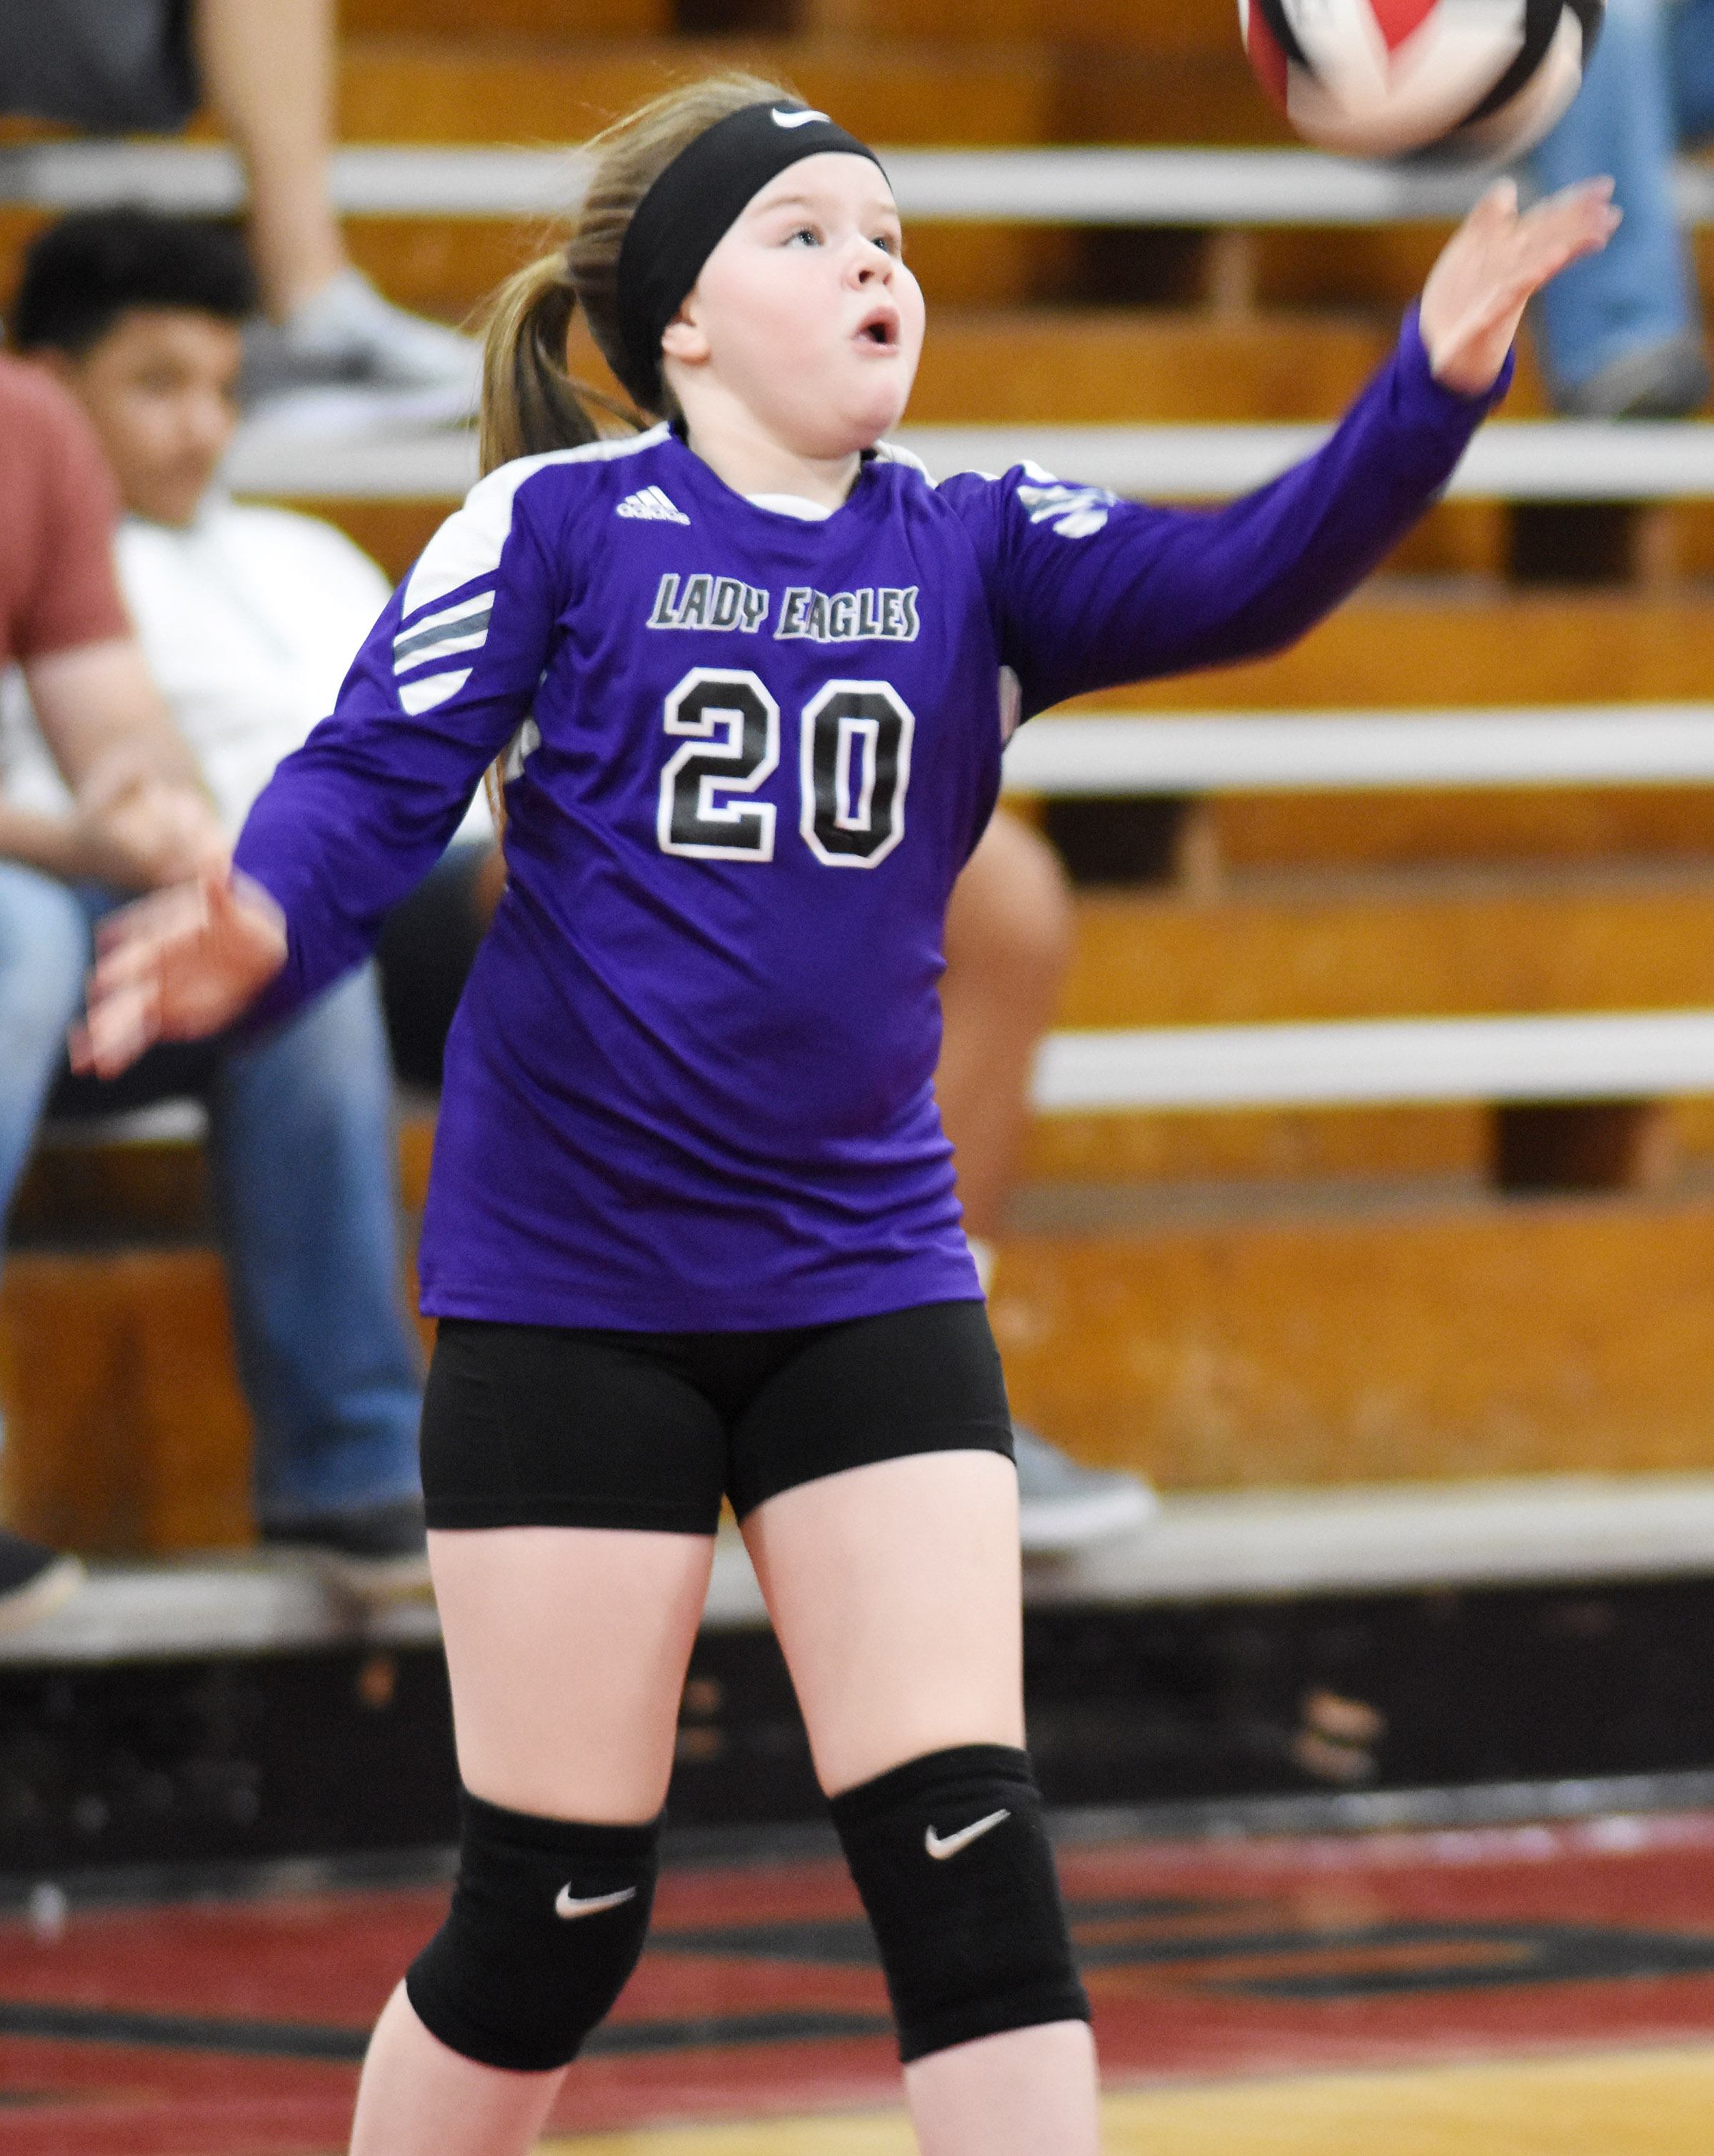 Campbellsville Elementary School fifth-grader Miley Hash serves.